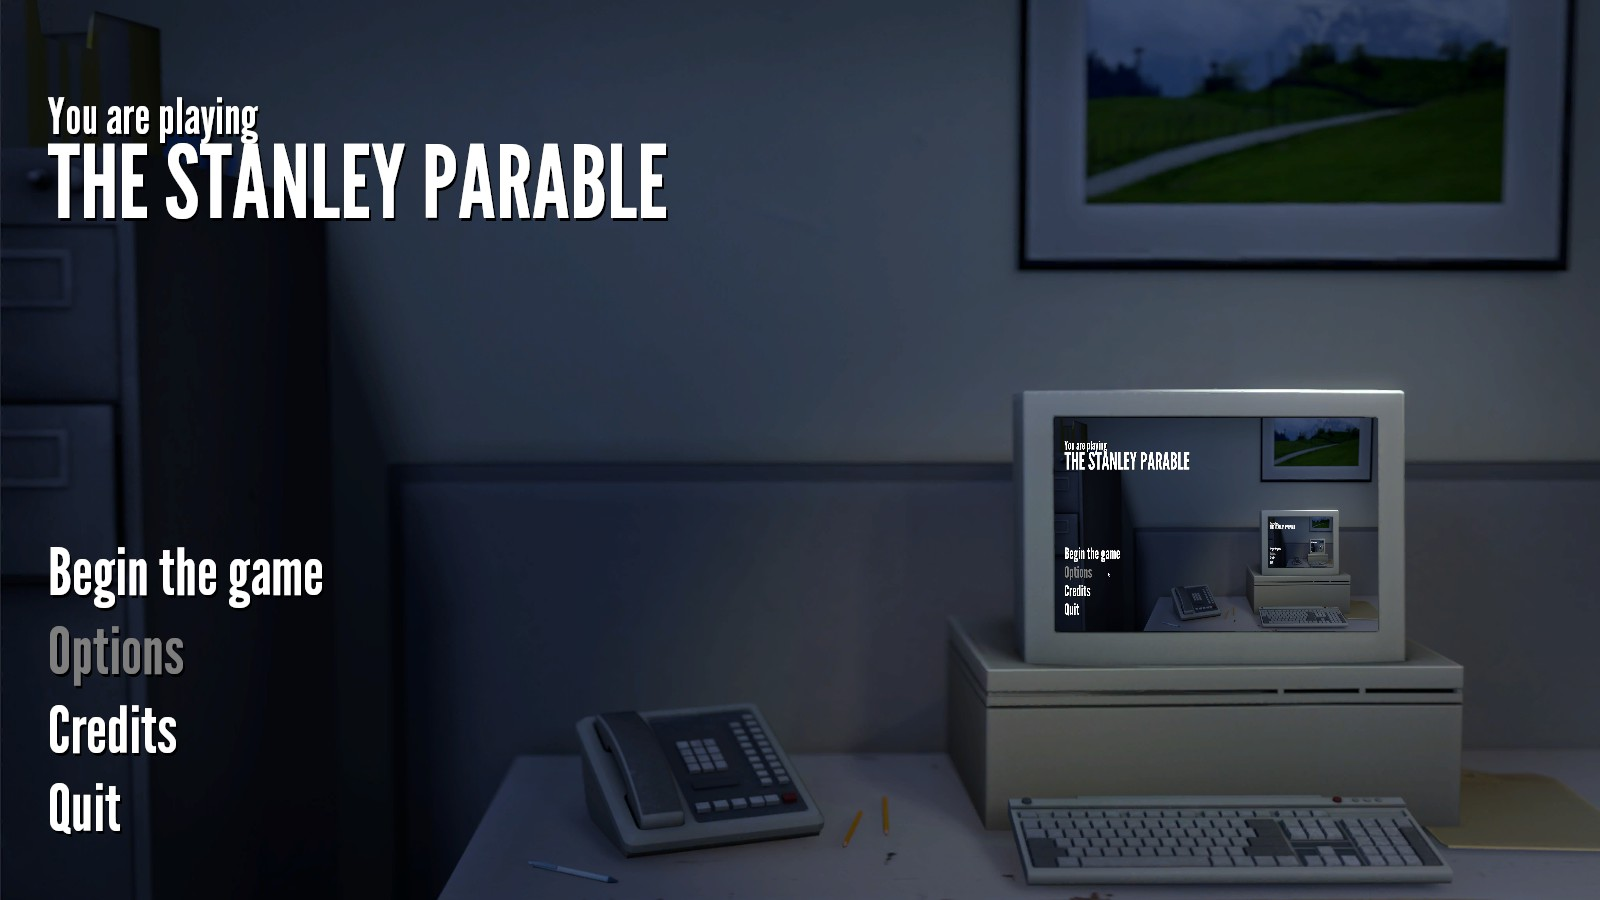 There is more to an office job than pushing buttons in The Stanley Parable